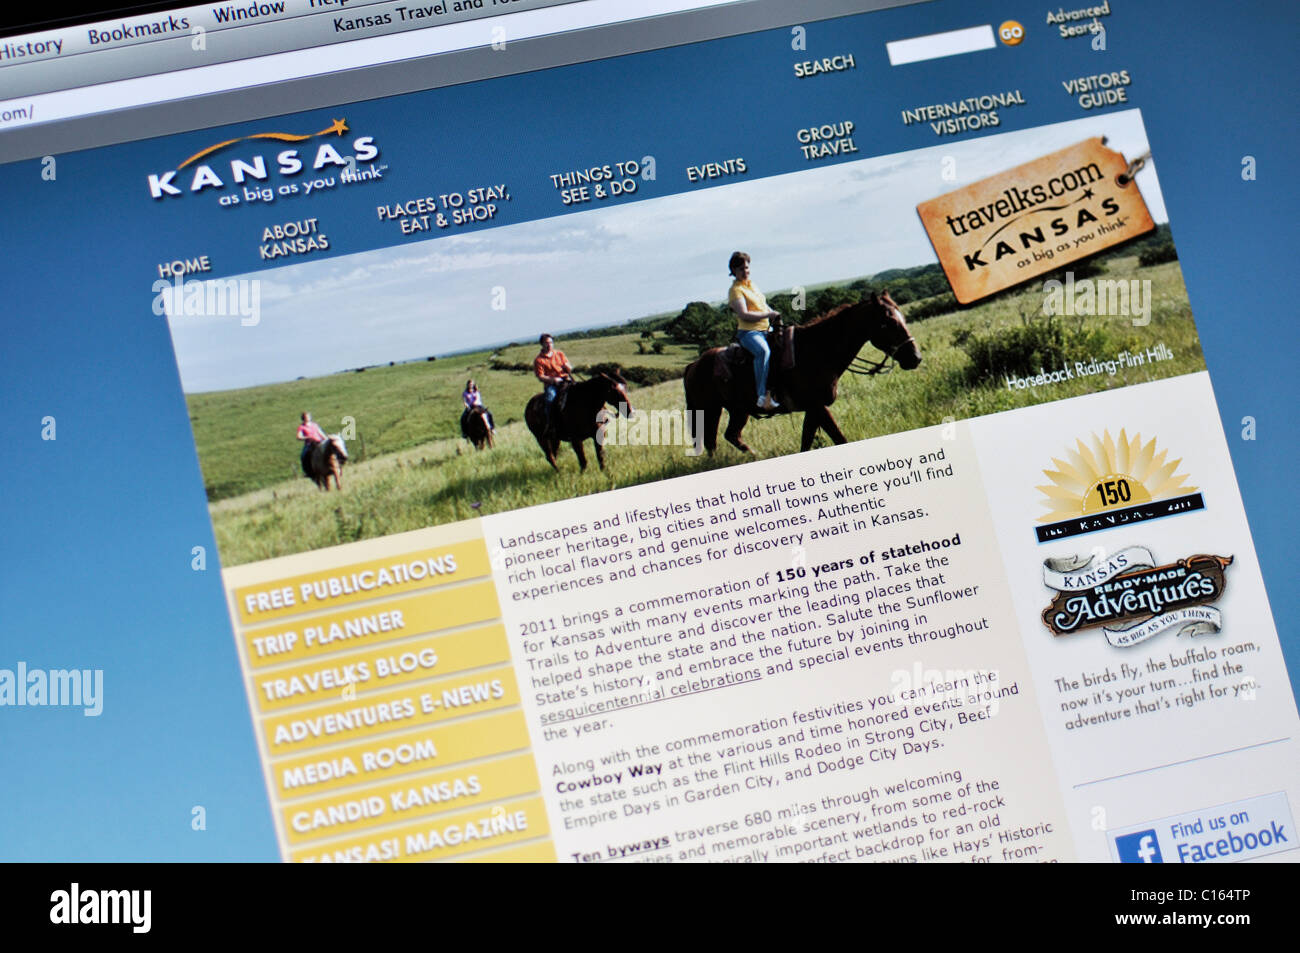 Site de tourisme officiel de l'état du Kansas Photo Stock